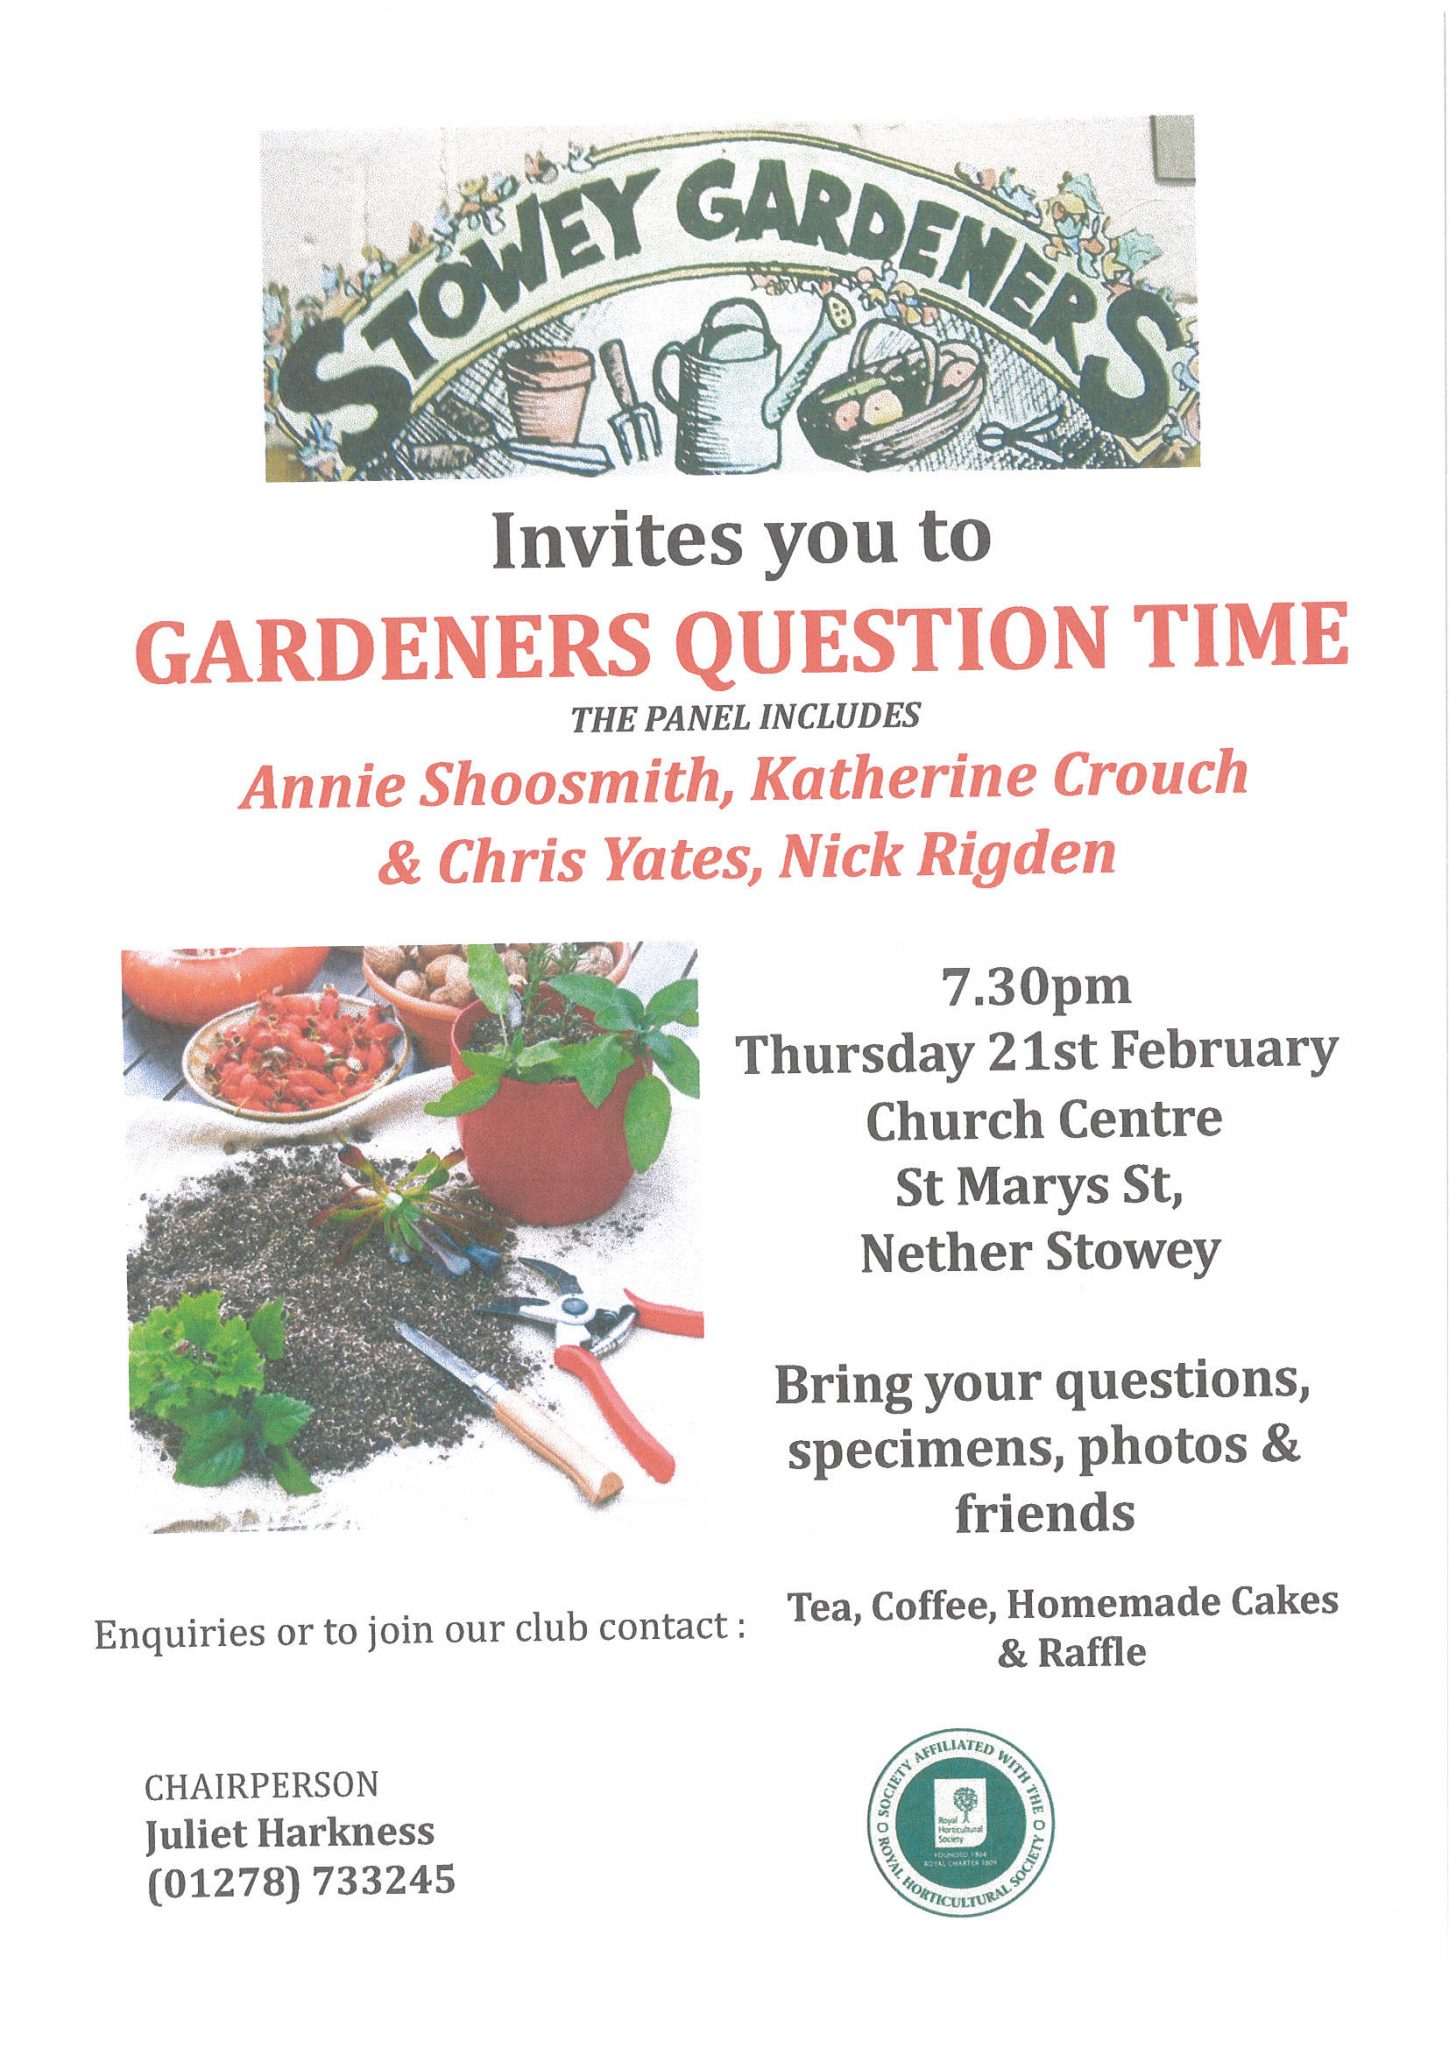 Stowey Gardeners invites you to 'Gardeners Question Time' @ St Mary's Church Centre